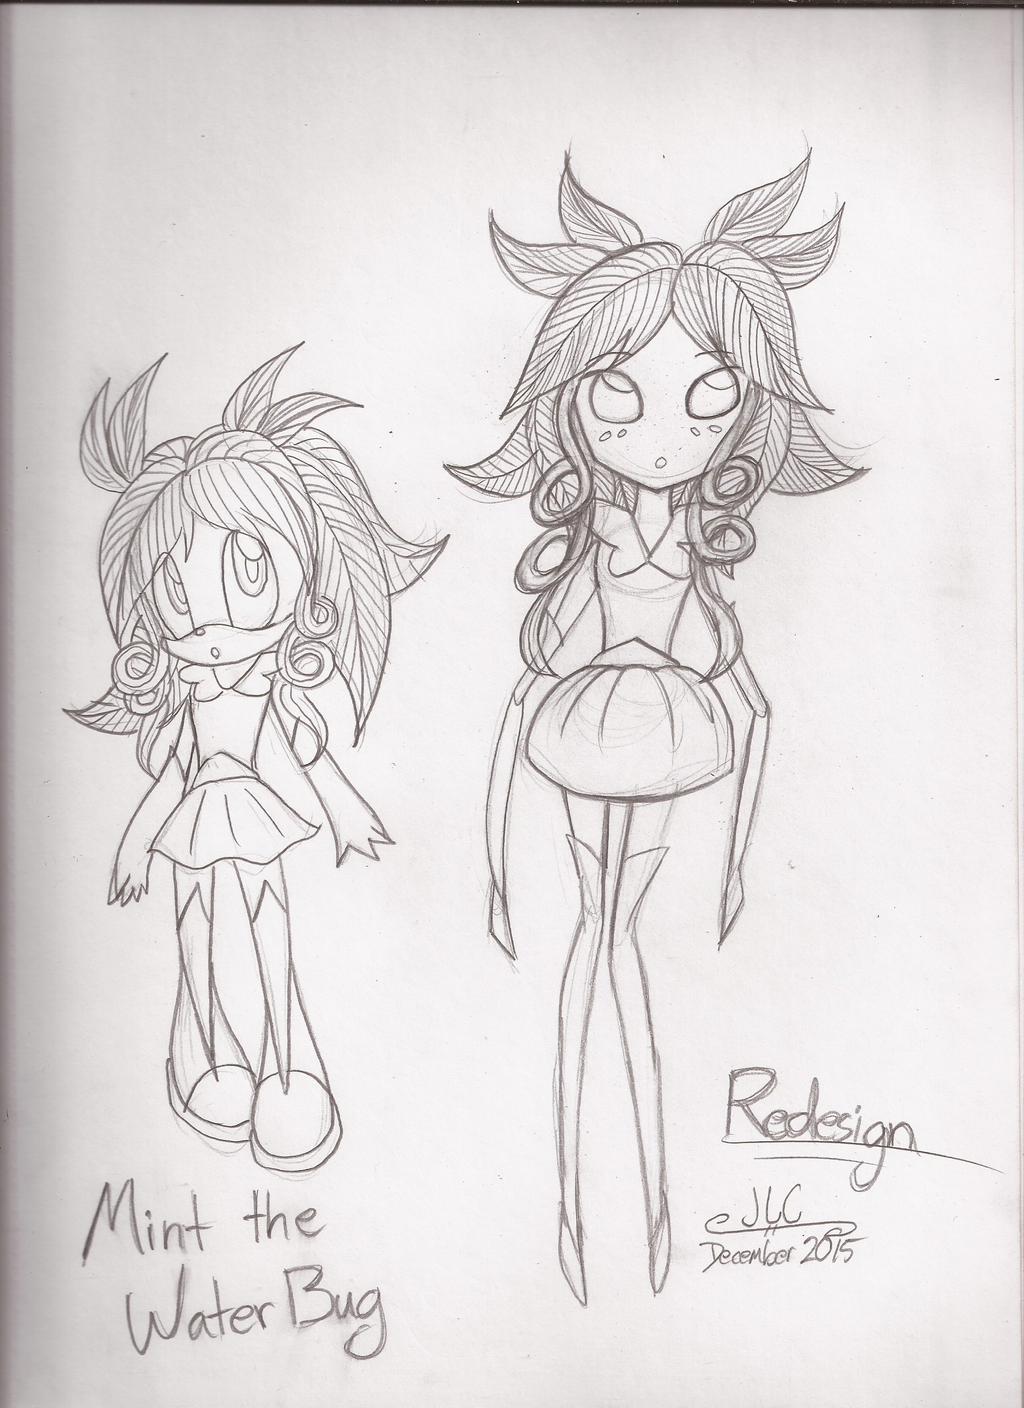 Character Drawcember Week 1 - Redesign